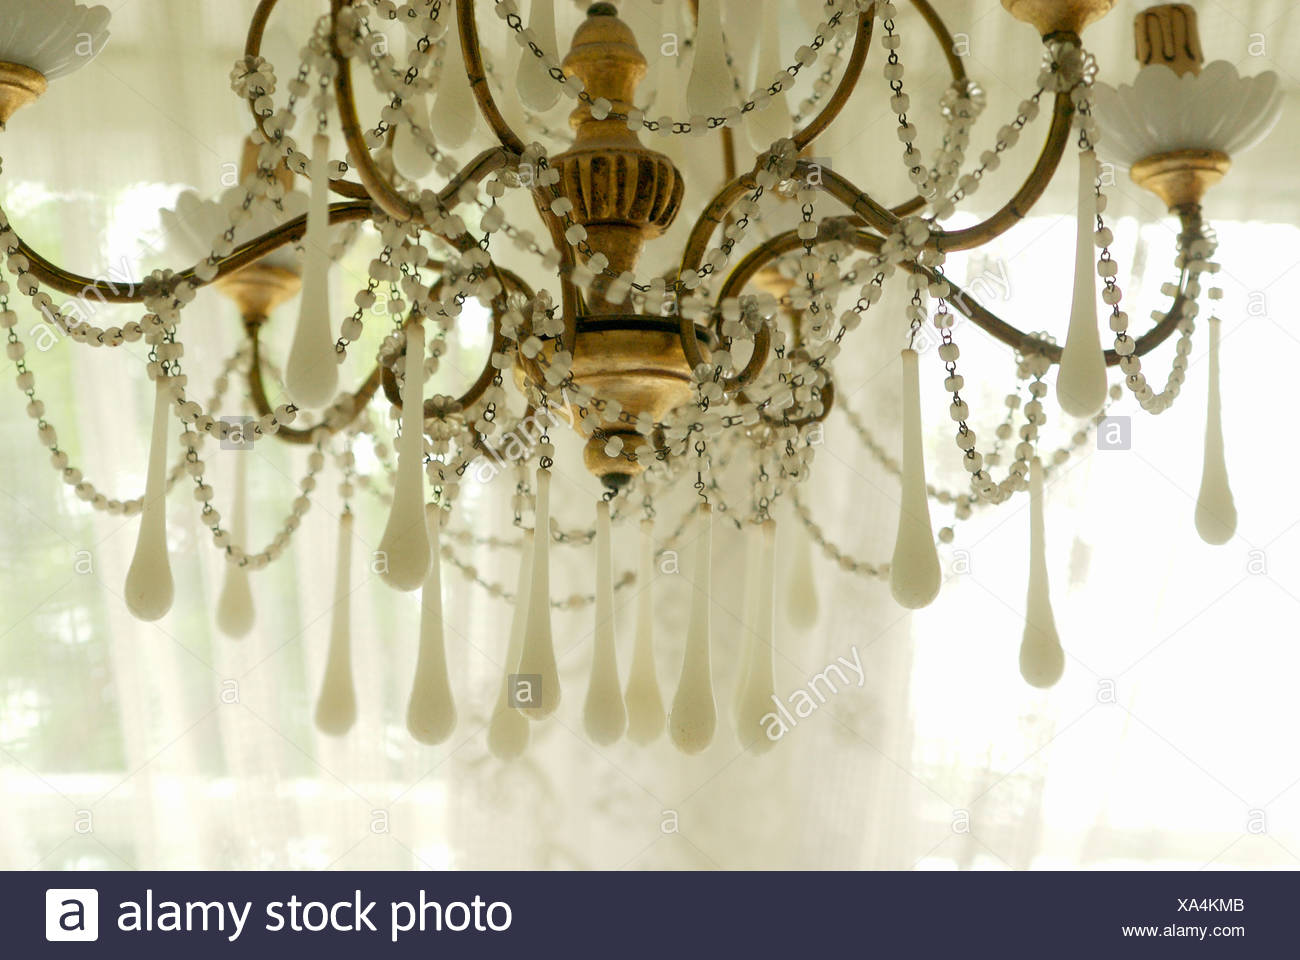 A cut glass chandelier sweden stock photo 281615723 alamy a cut glass chandelier sweden aloadofball Choice Image